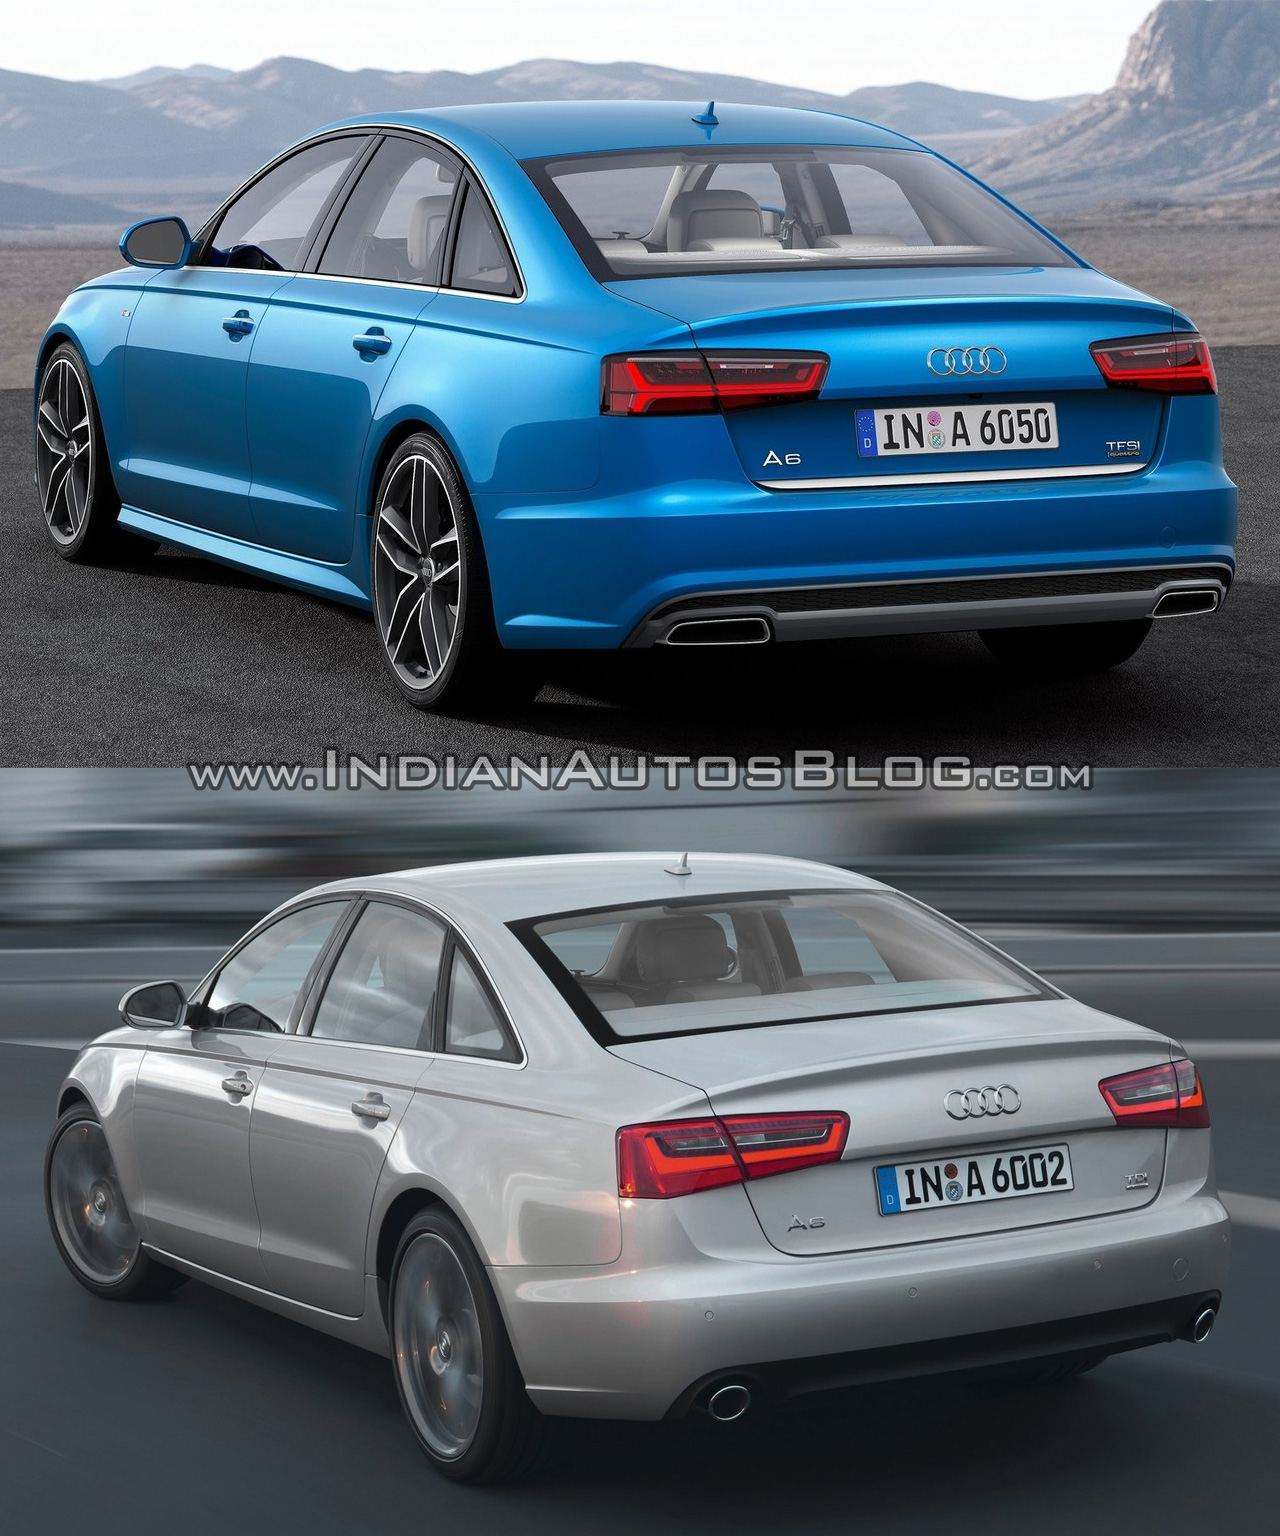 2015 Audi A6 Vs Pre-facelift Model